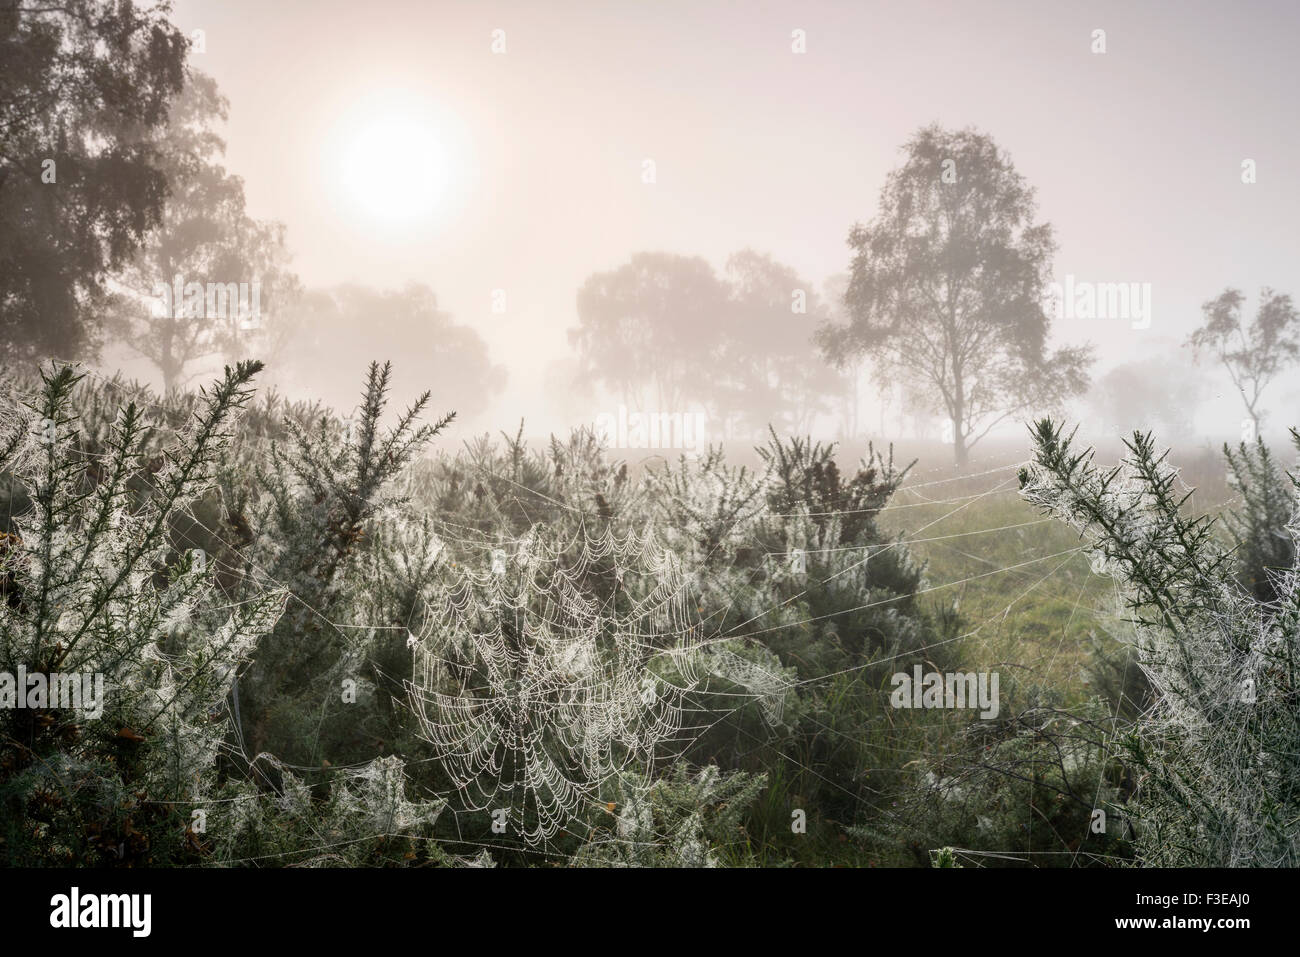 Cobweds and early morning dew, Strensall Common, September 2015 - Stock Image